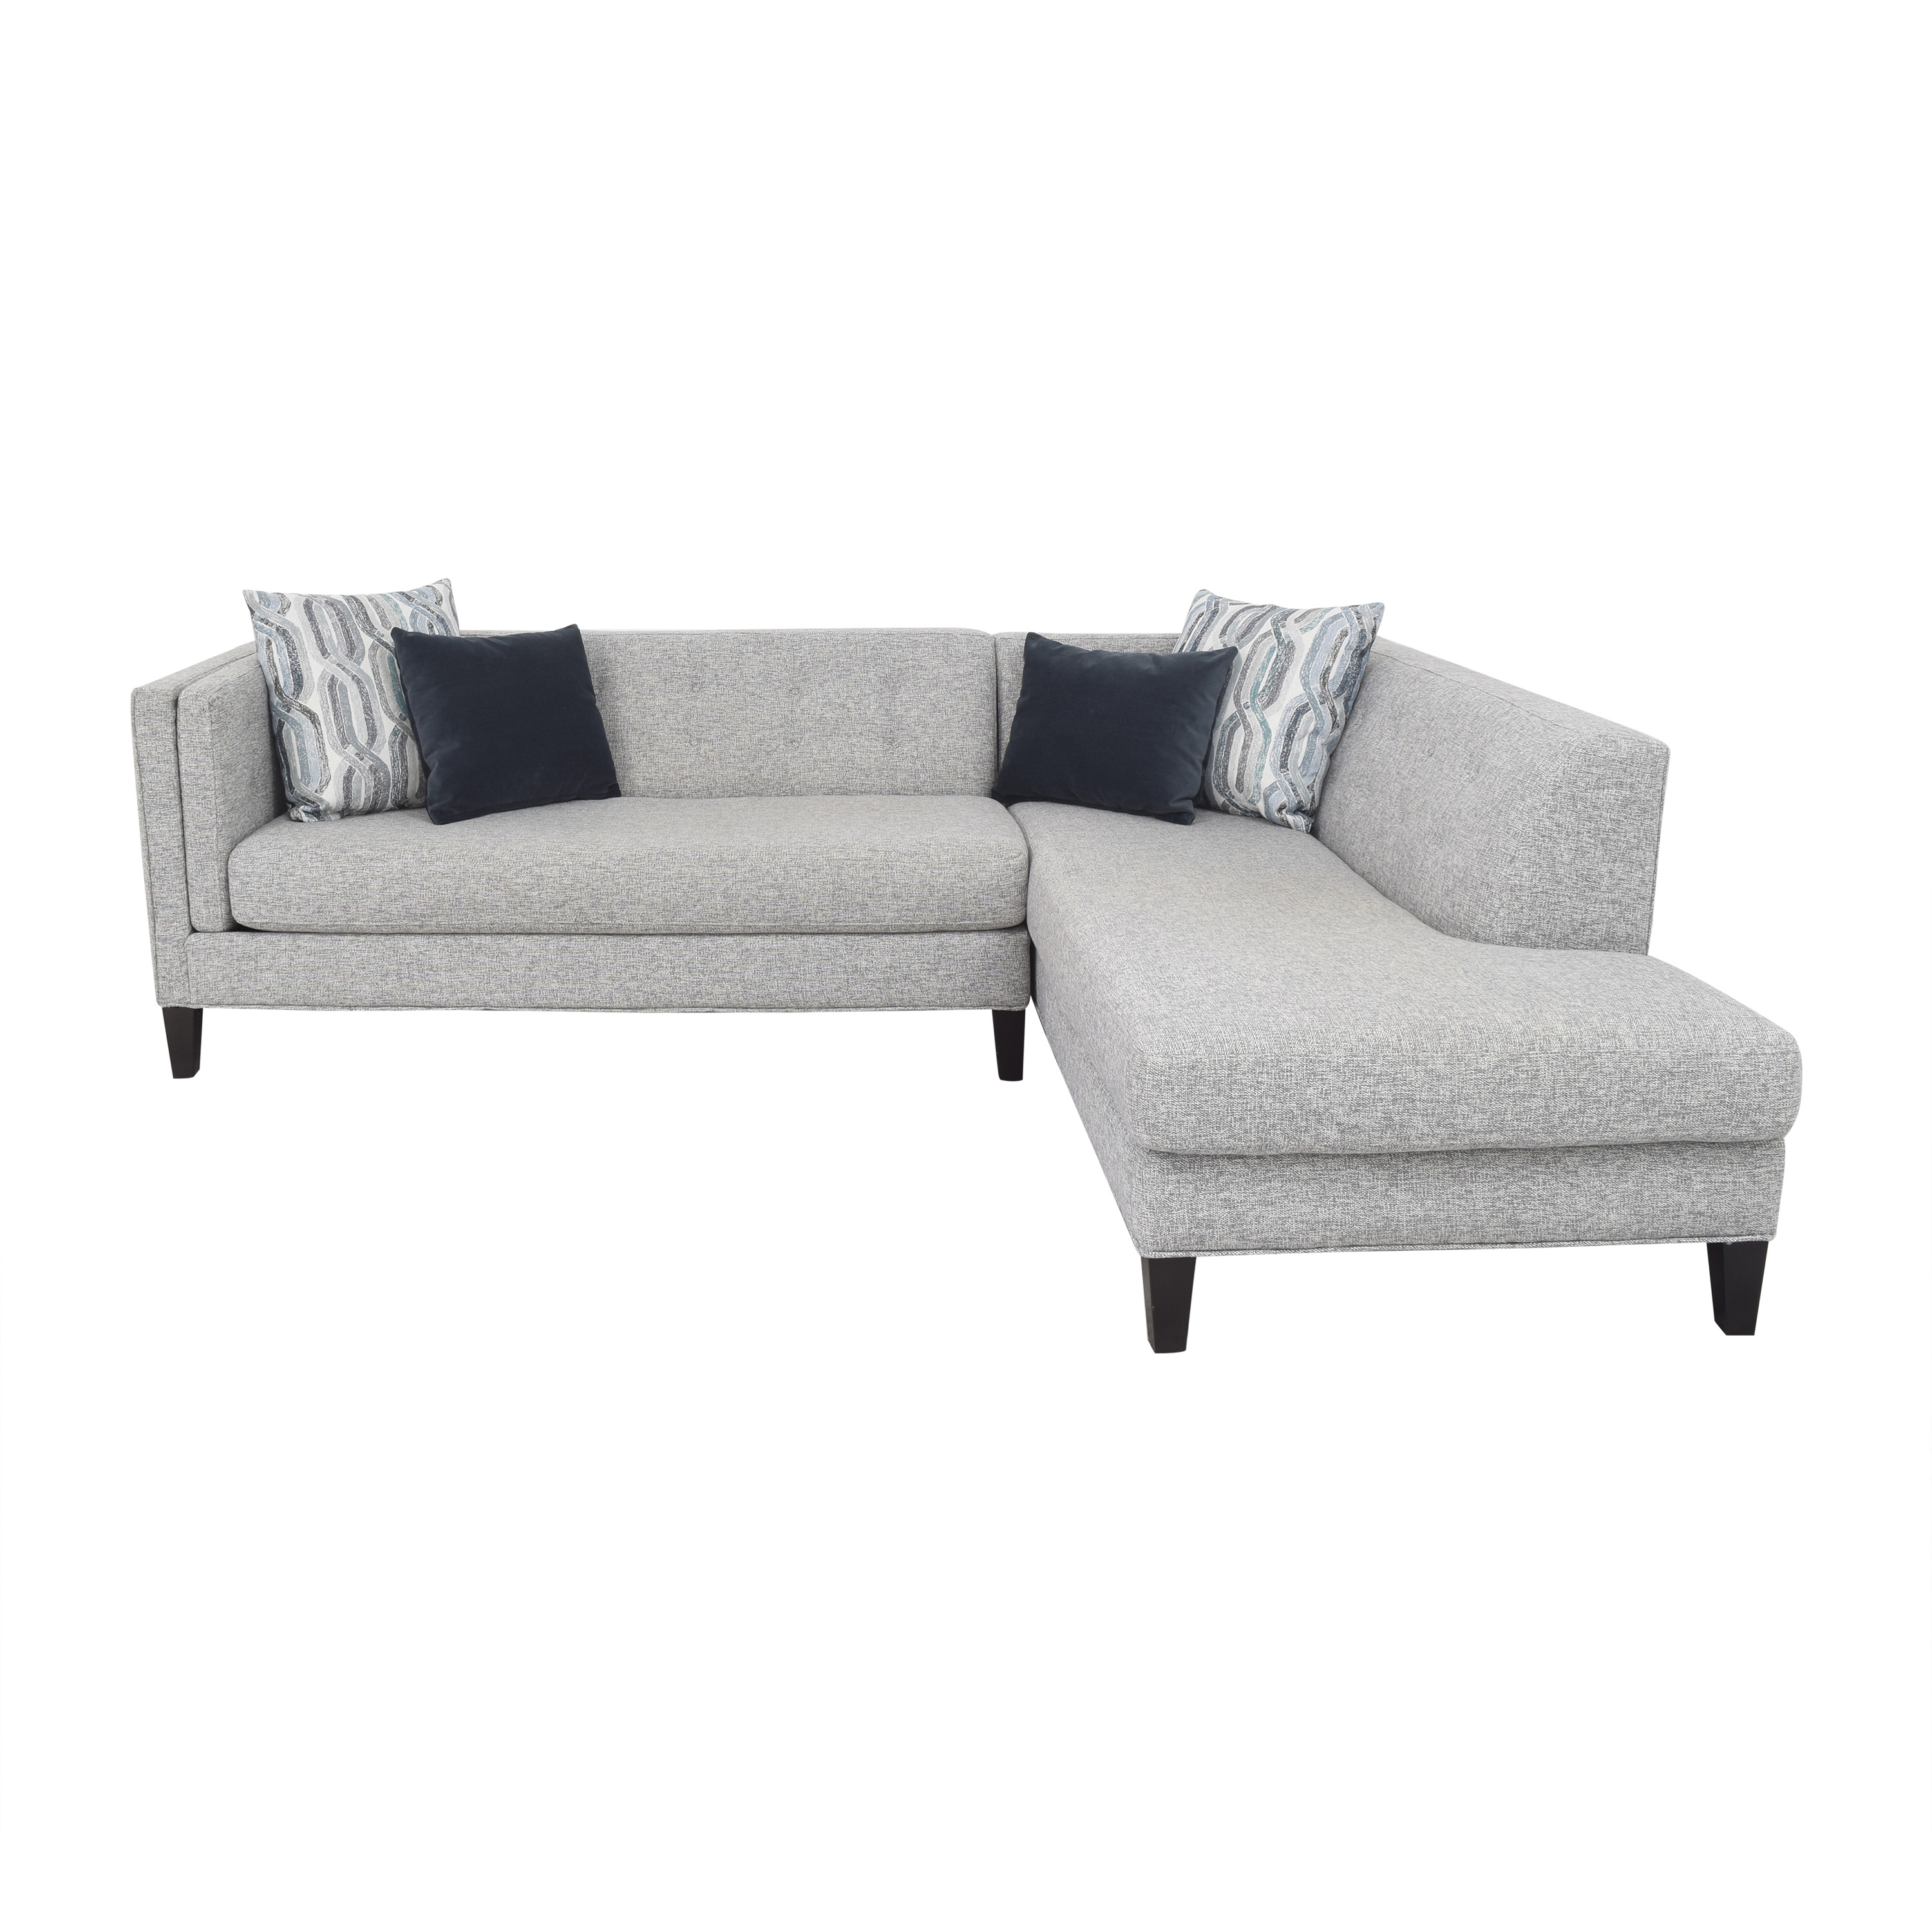 Raymour & Flanigan Raymour & Flanigan Ackland Chaise Sectional Sofas